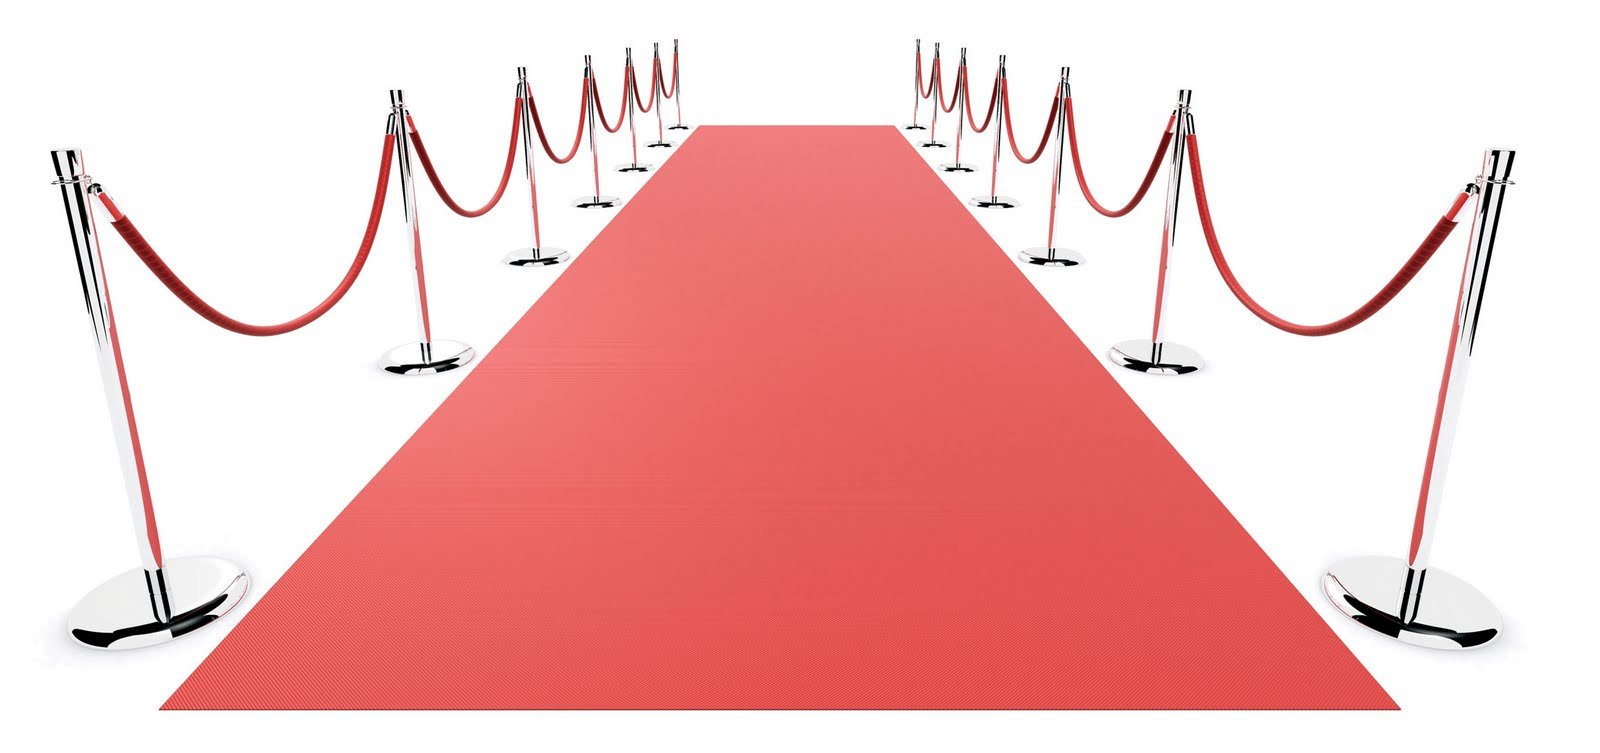 Carpet clipart red rug. Carpets welcome in dubai